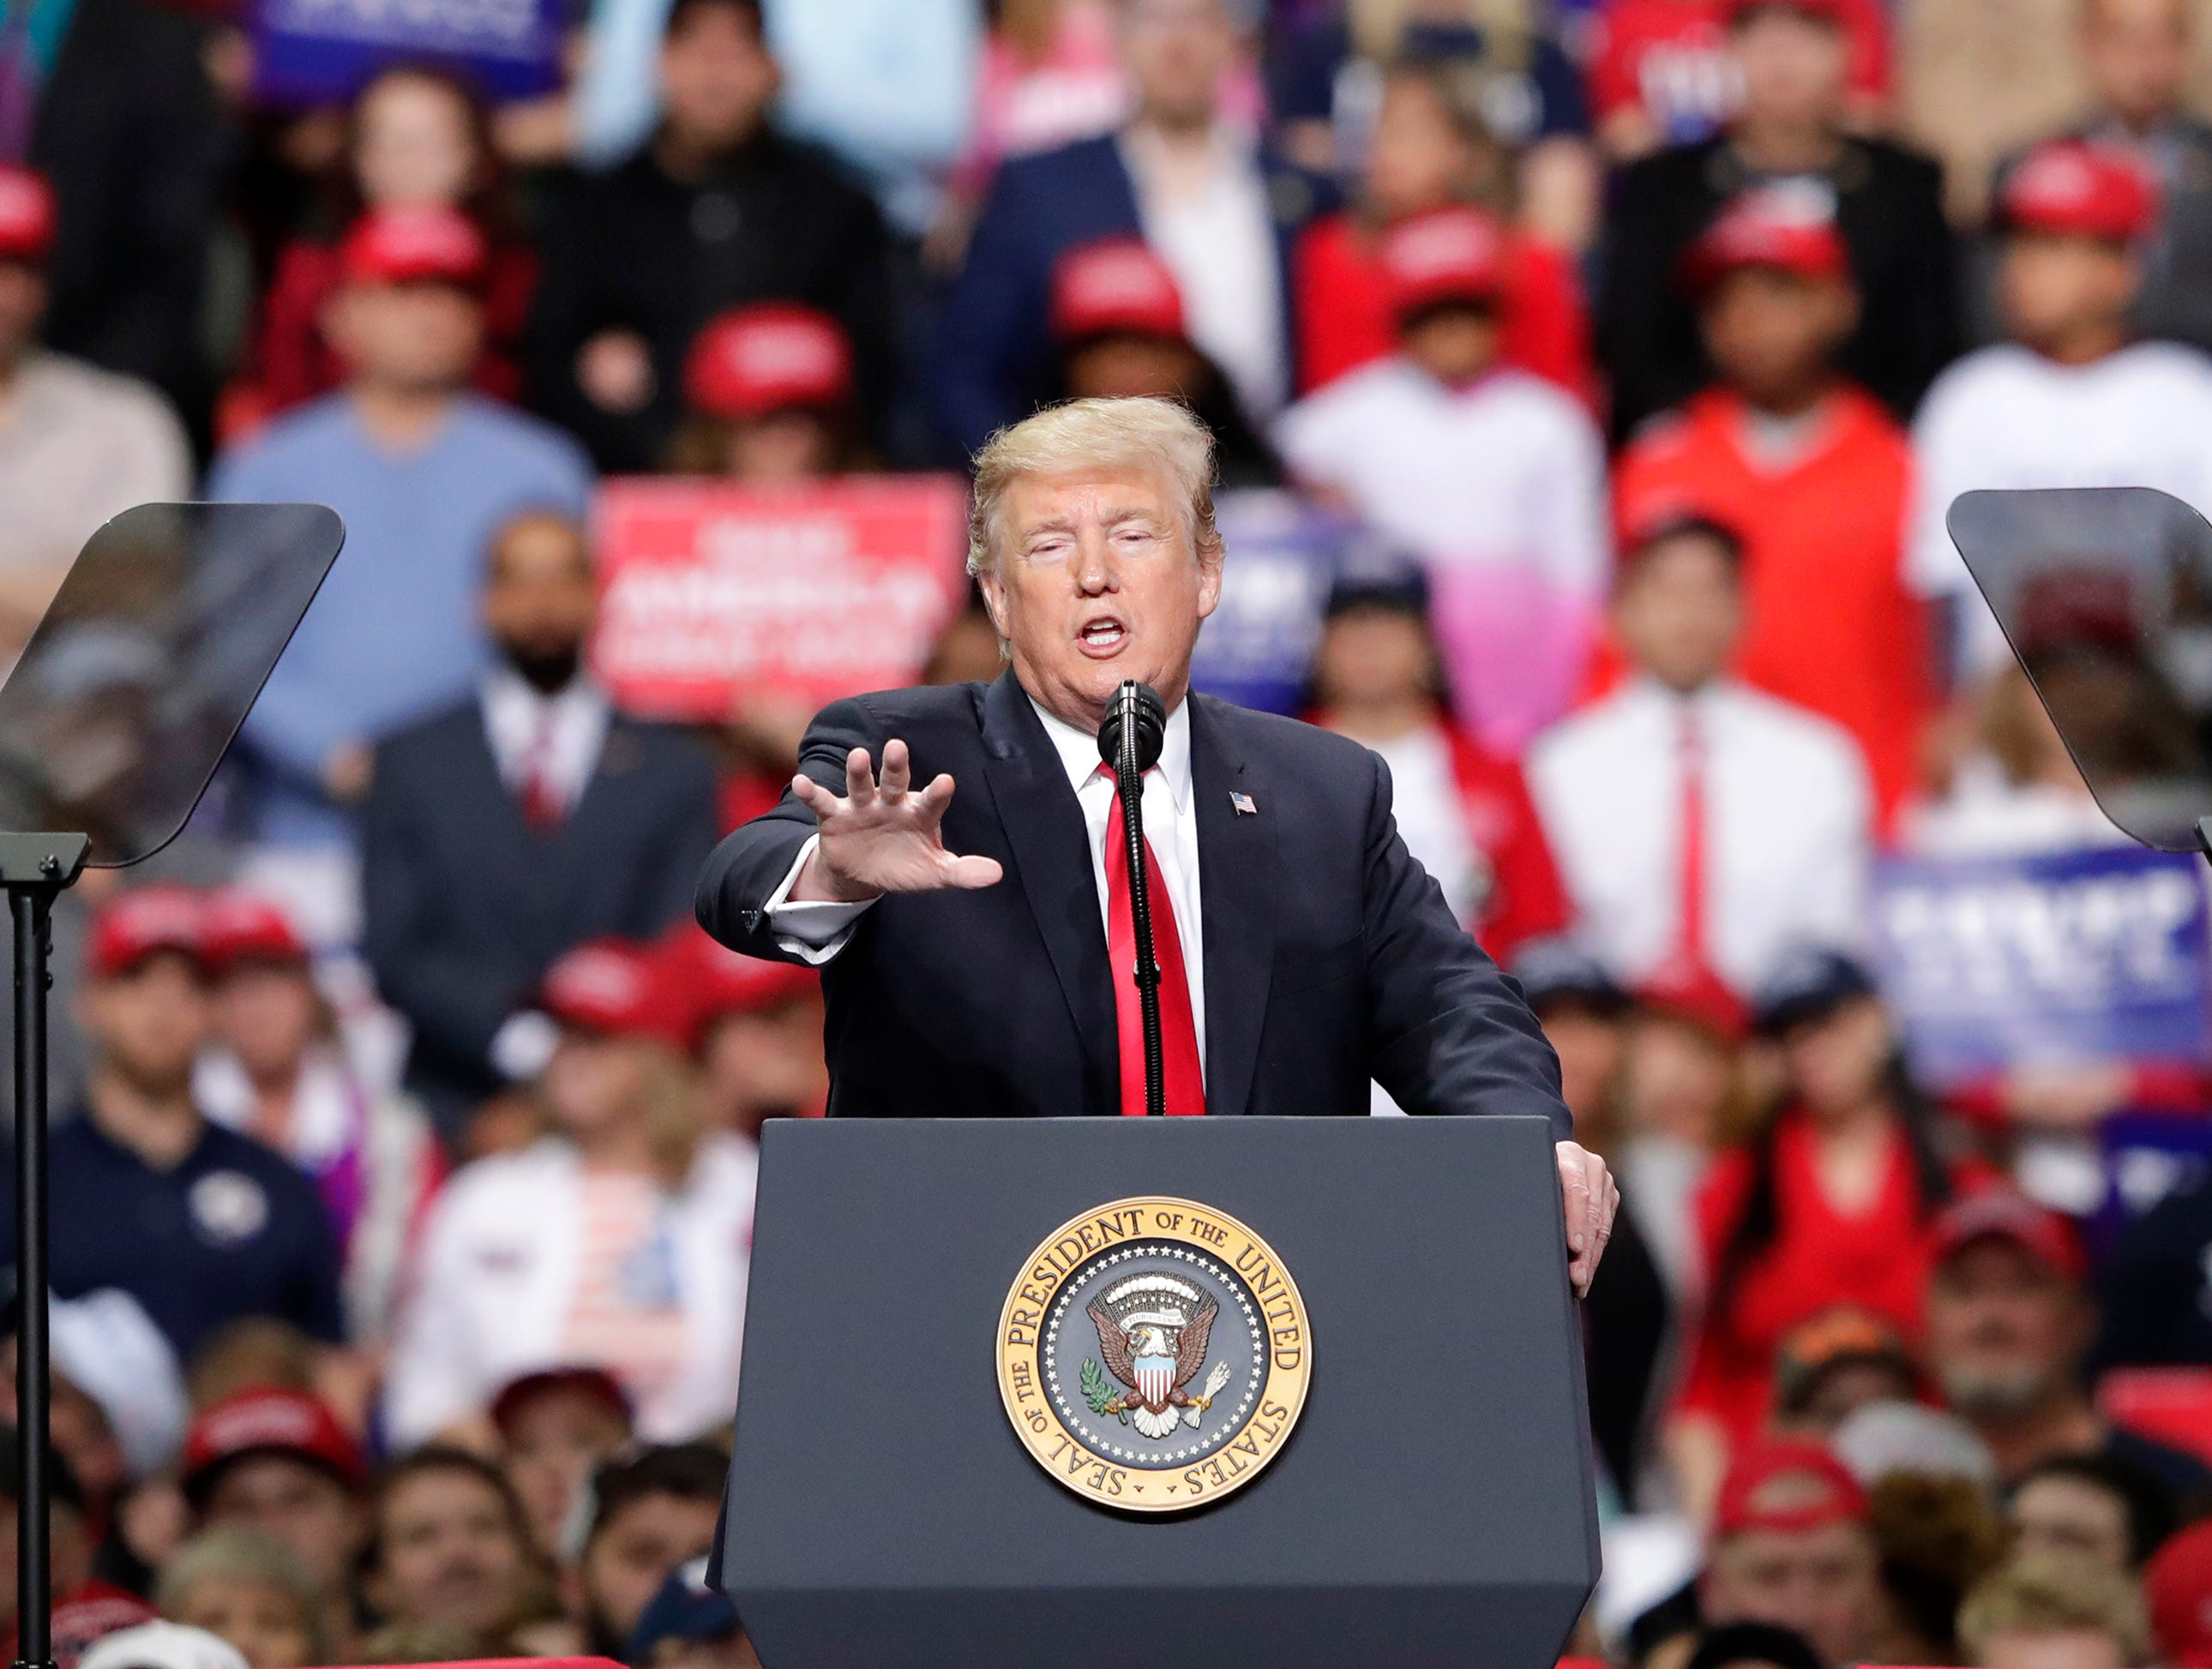 President Donald J. Trump speaks during a Make America Great Again Rally on Saturday, April 27, 2019, at the Resch Center in Green Bay, Wis.